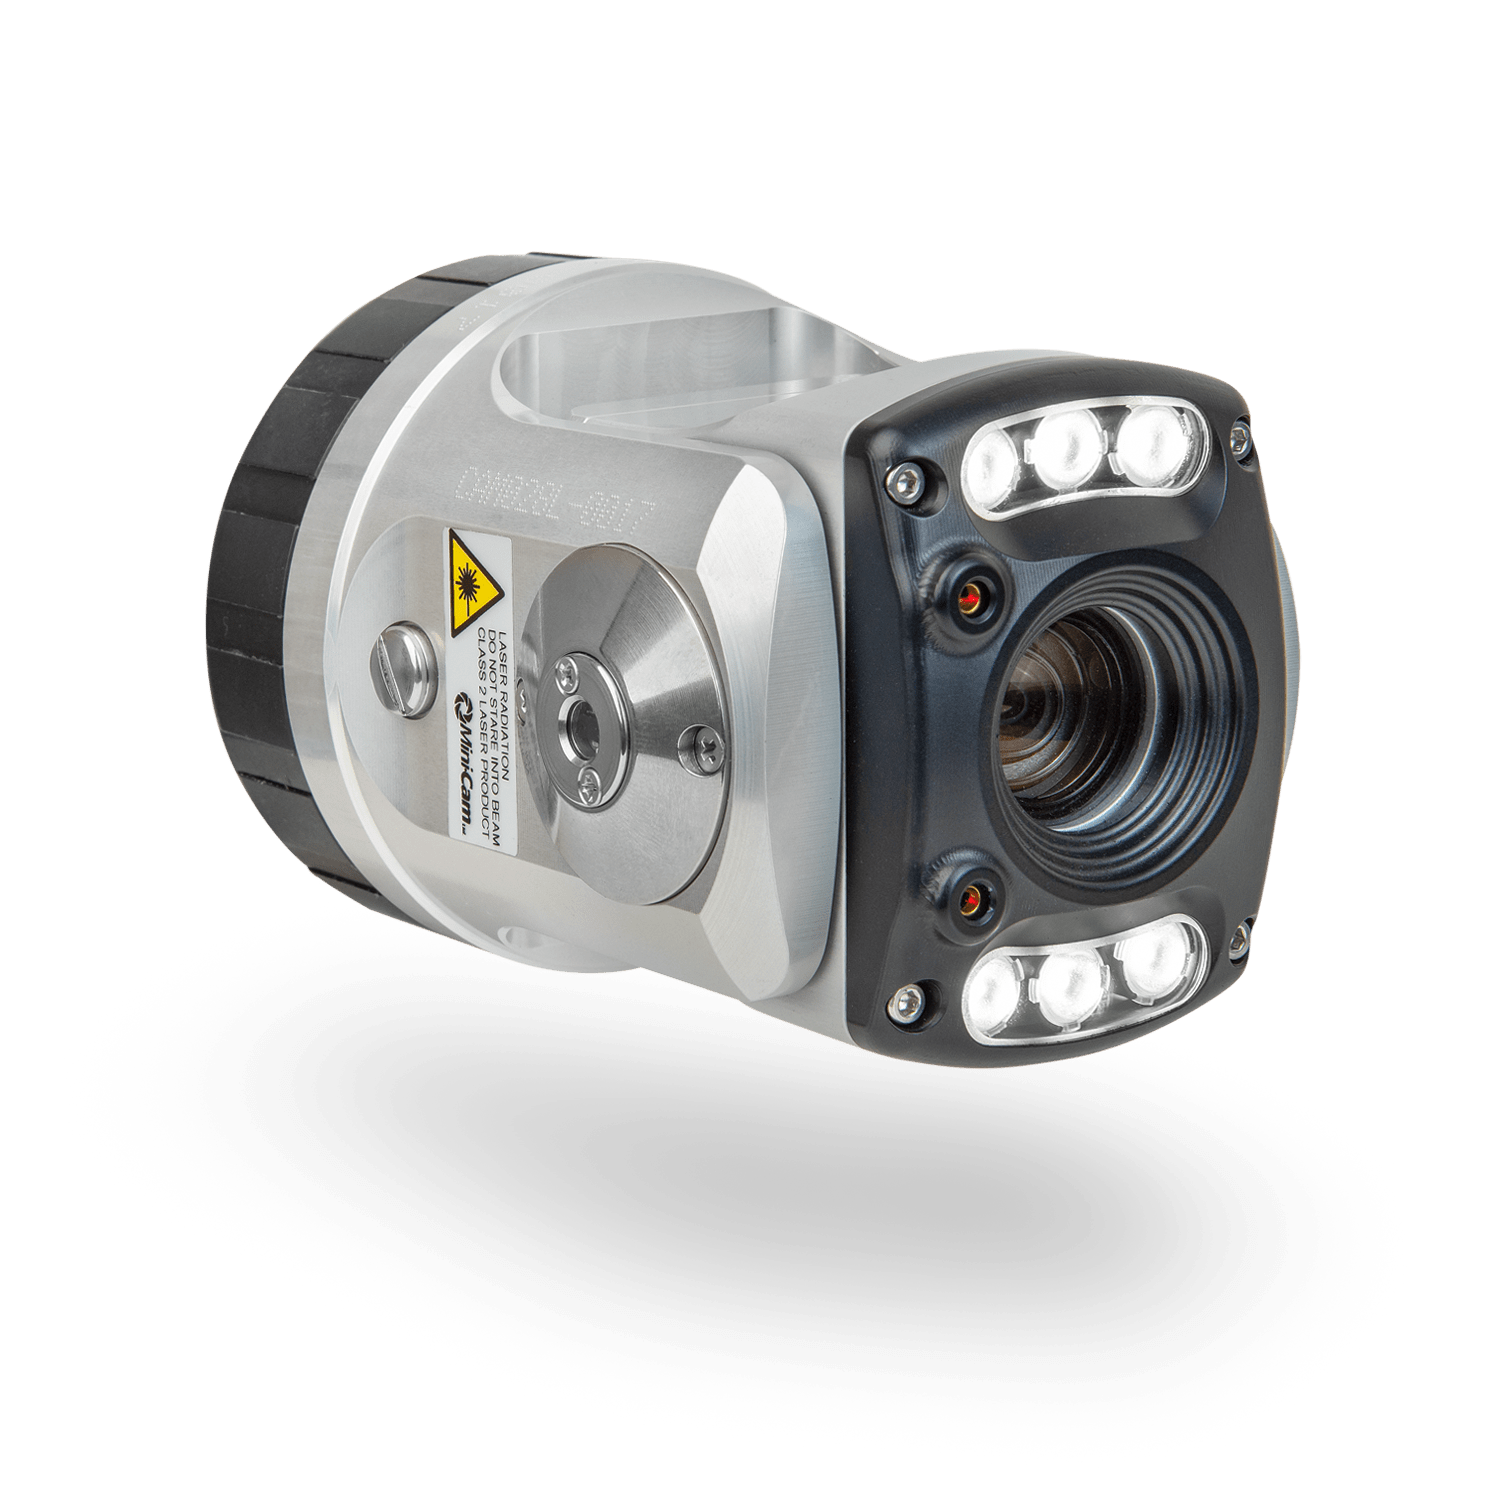 Pan, Rotate, Zoom and Laser Camera - Ehle-HD development and sales company